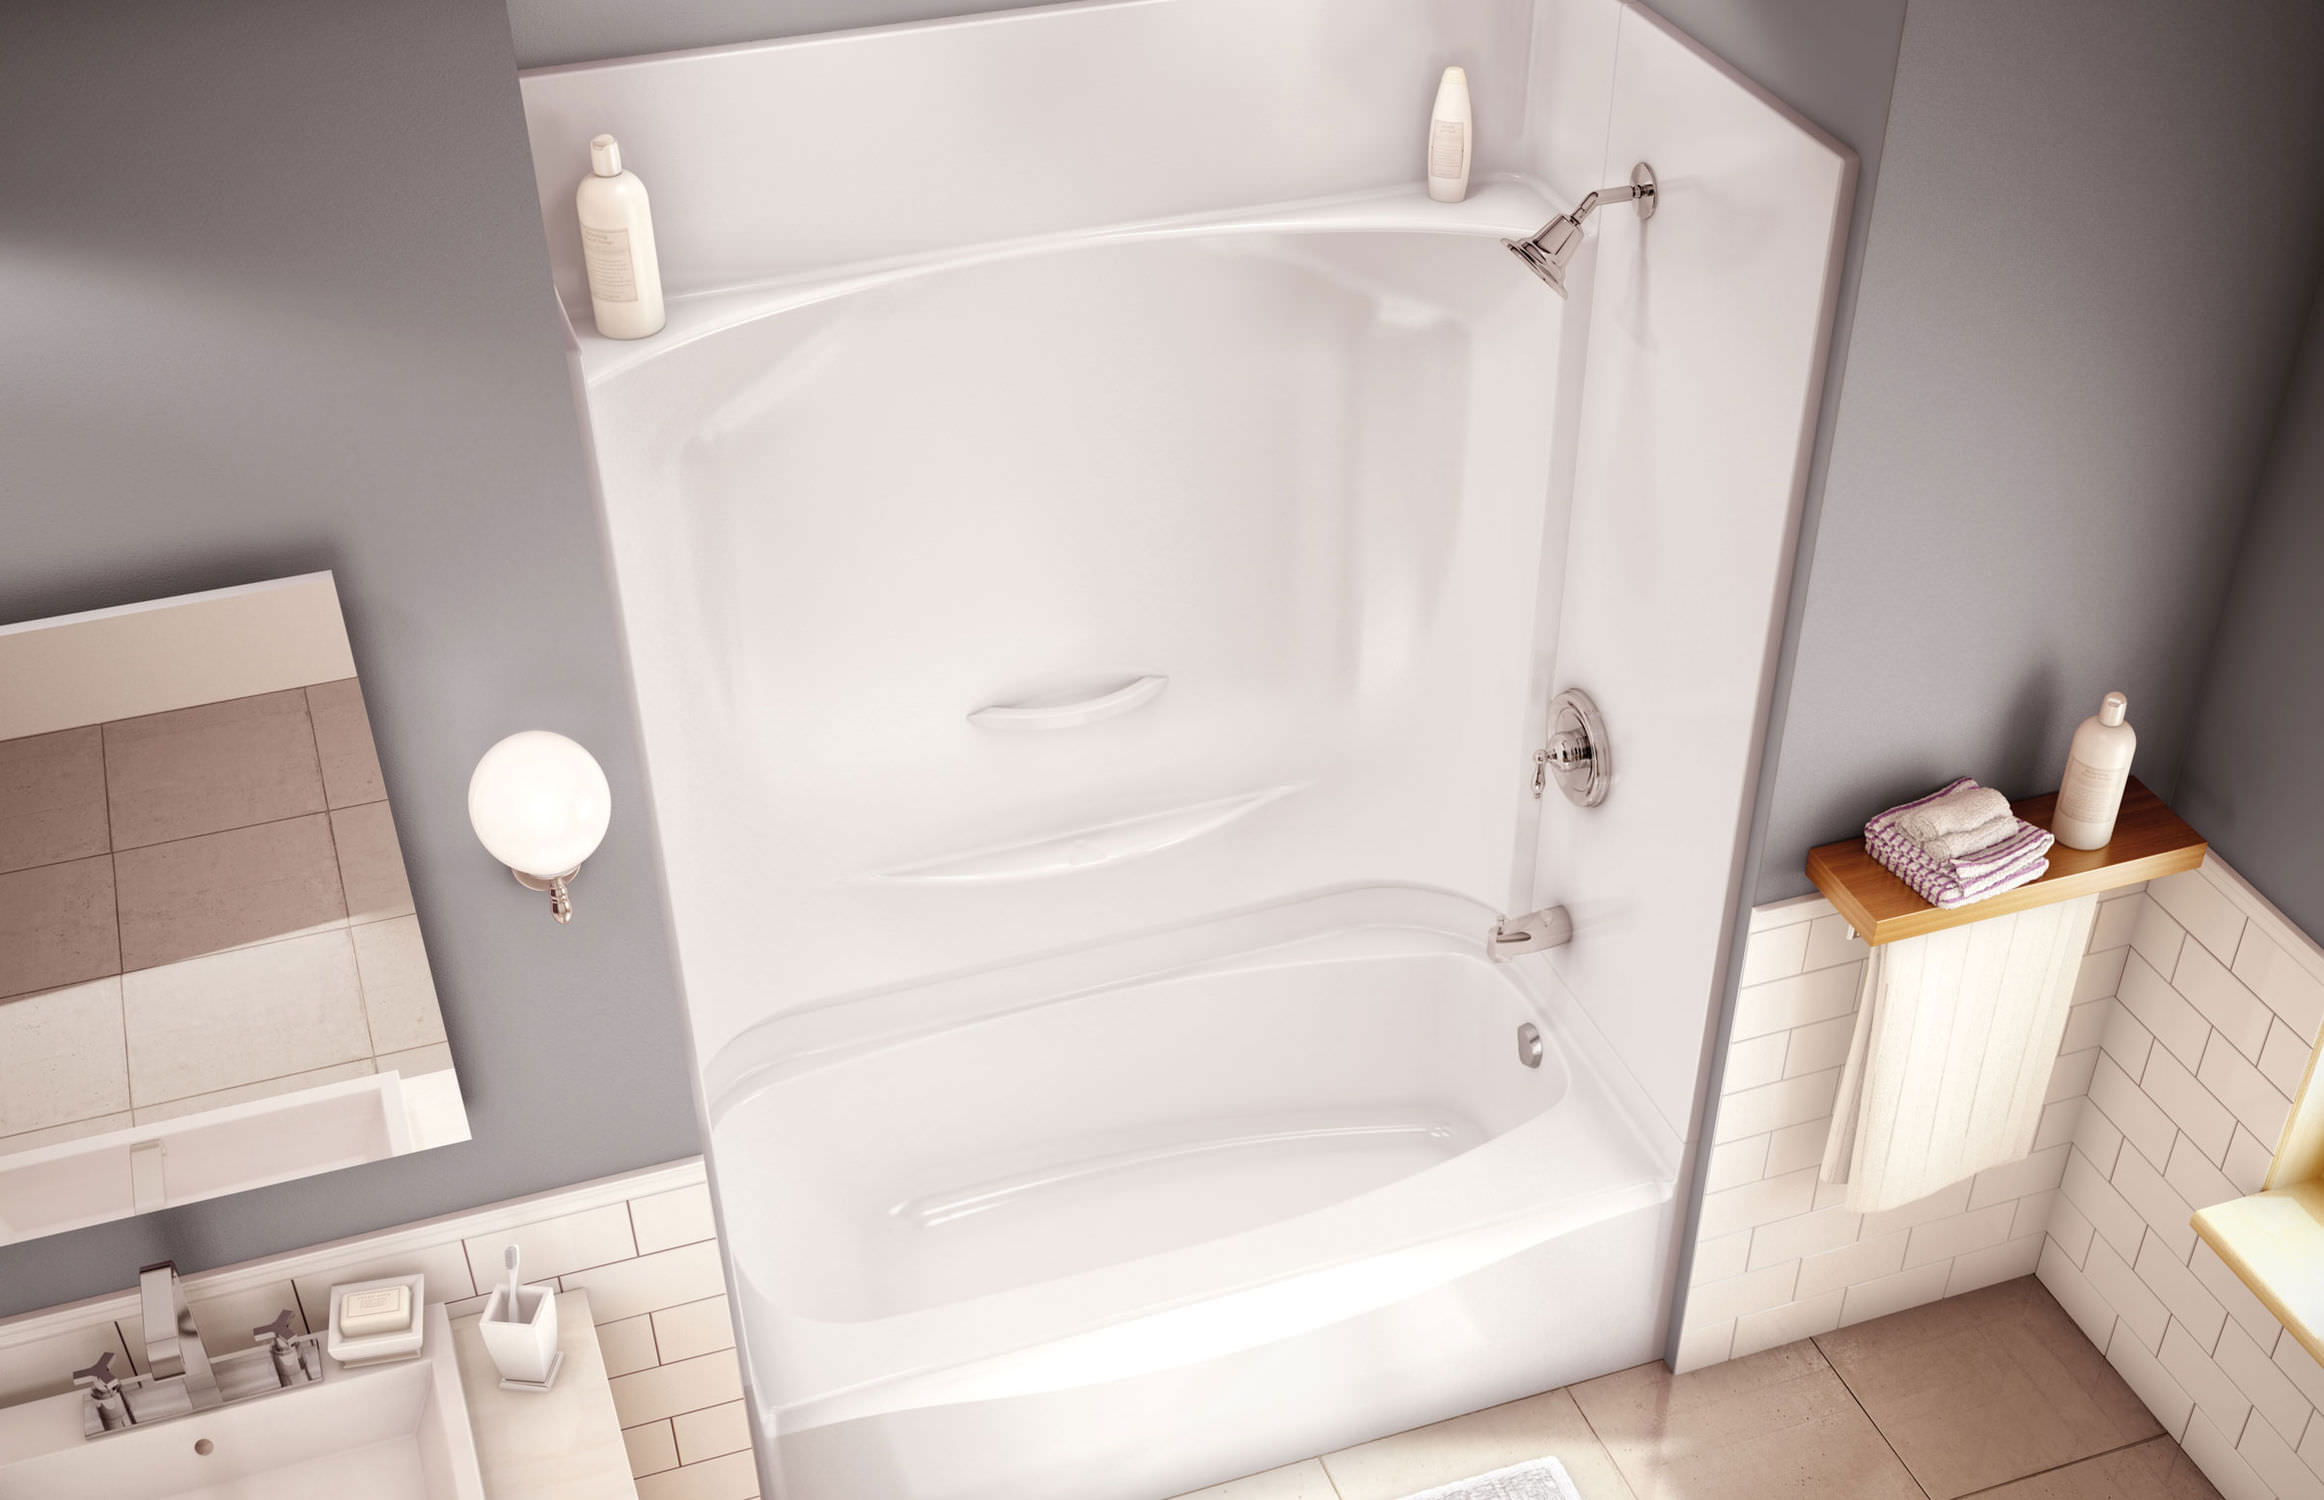 Built in bathtub shower combination   rectangular   acrylic ESSENCE  TS 6032 MAAXBuilt in bathtub shower combination   rectangular   acrylic  . Maax Tub Shower Combo. Home Design Ideas